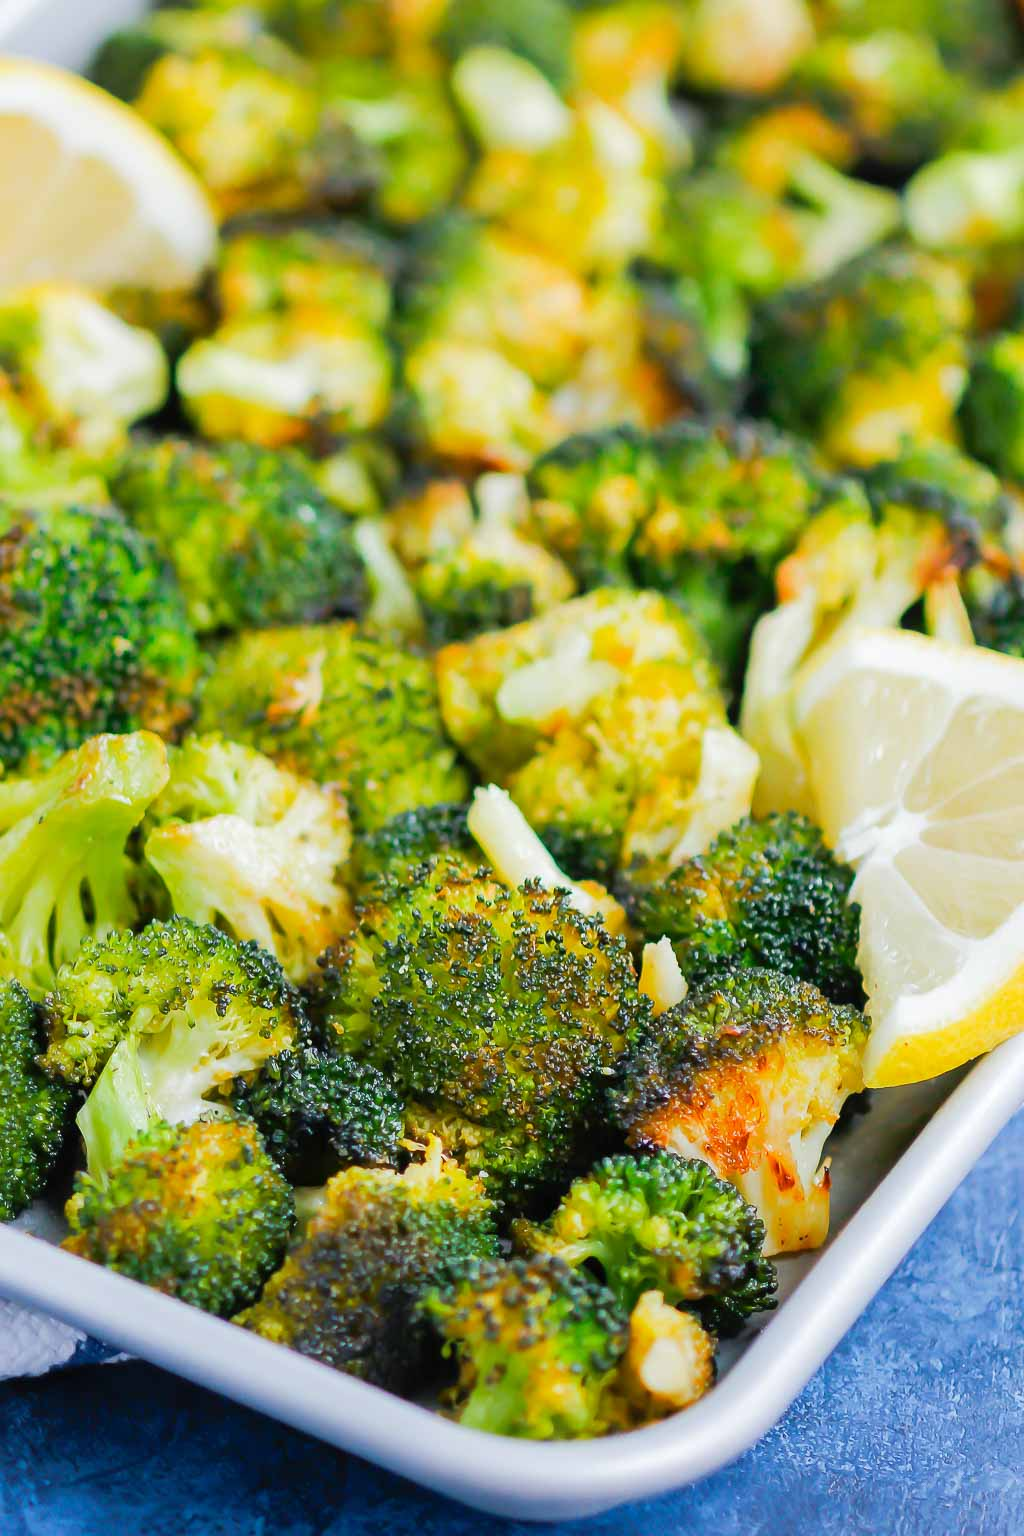 Roasted Garlic Lemon Broccoli is an easy side dish that's ready in less than 30 minutes. With just four ingredients, this simple veggie is tender, yet slightly crispy and all-around delicious!